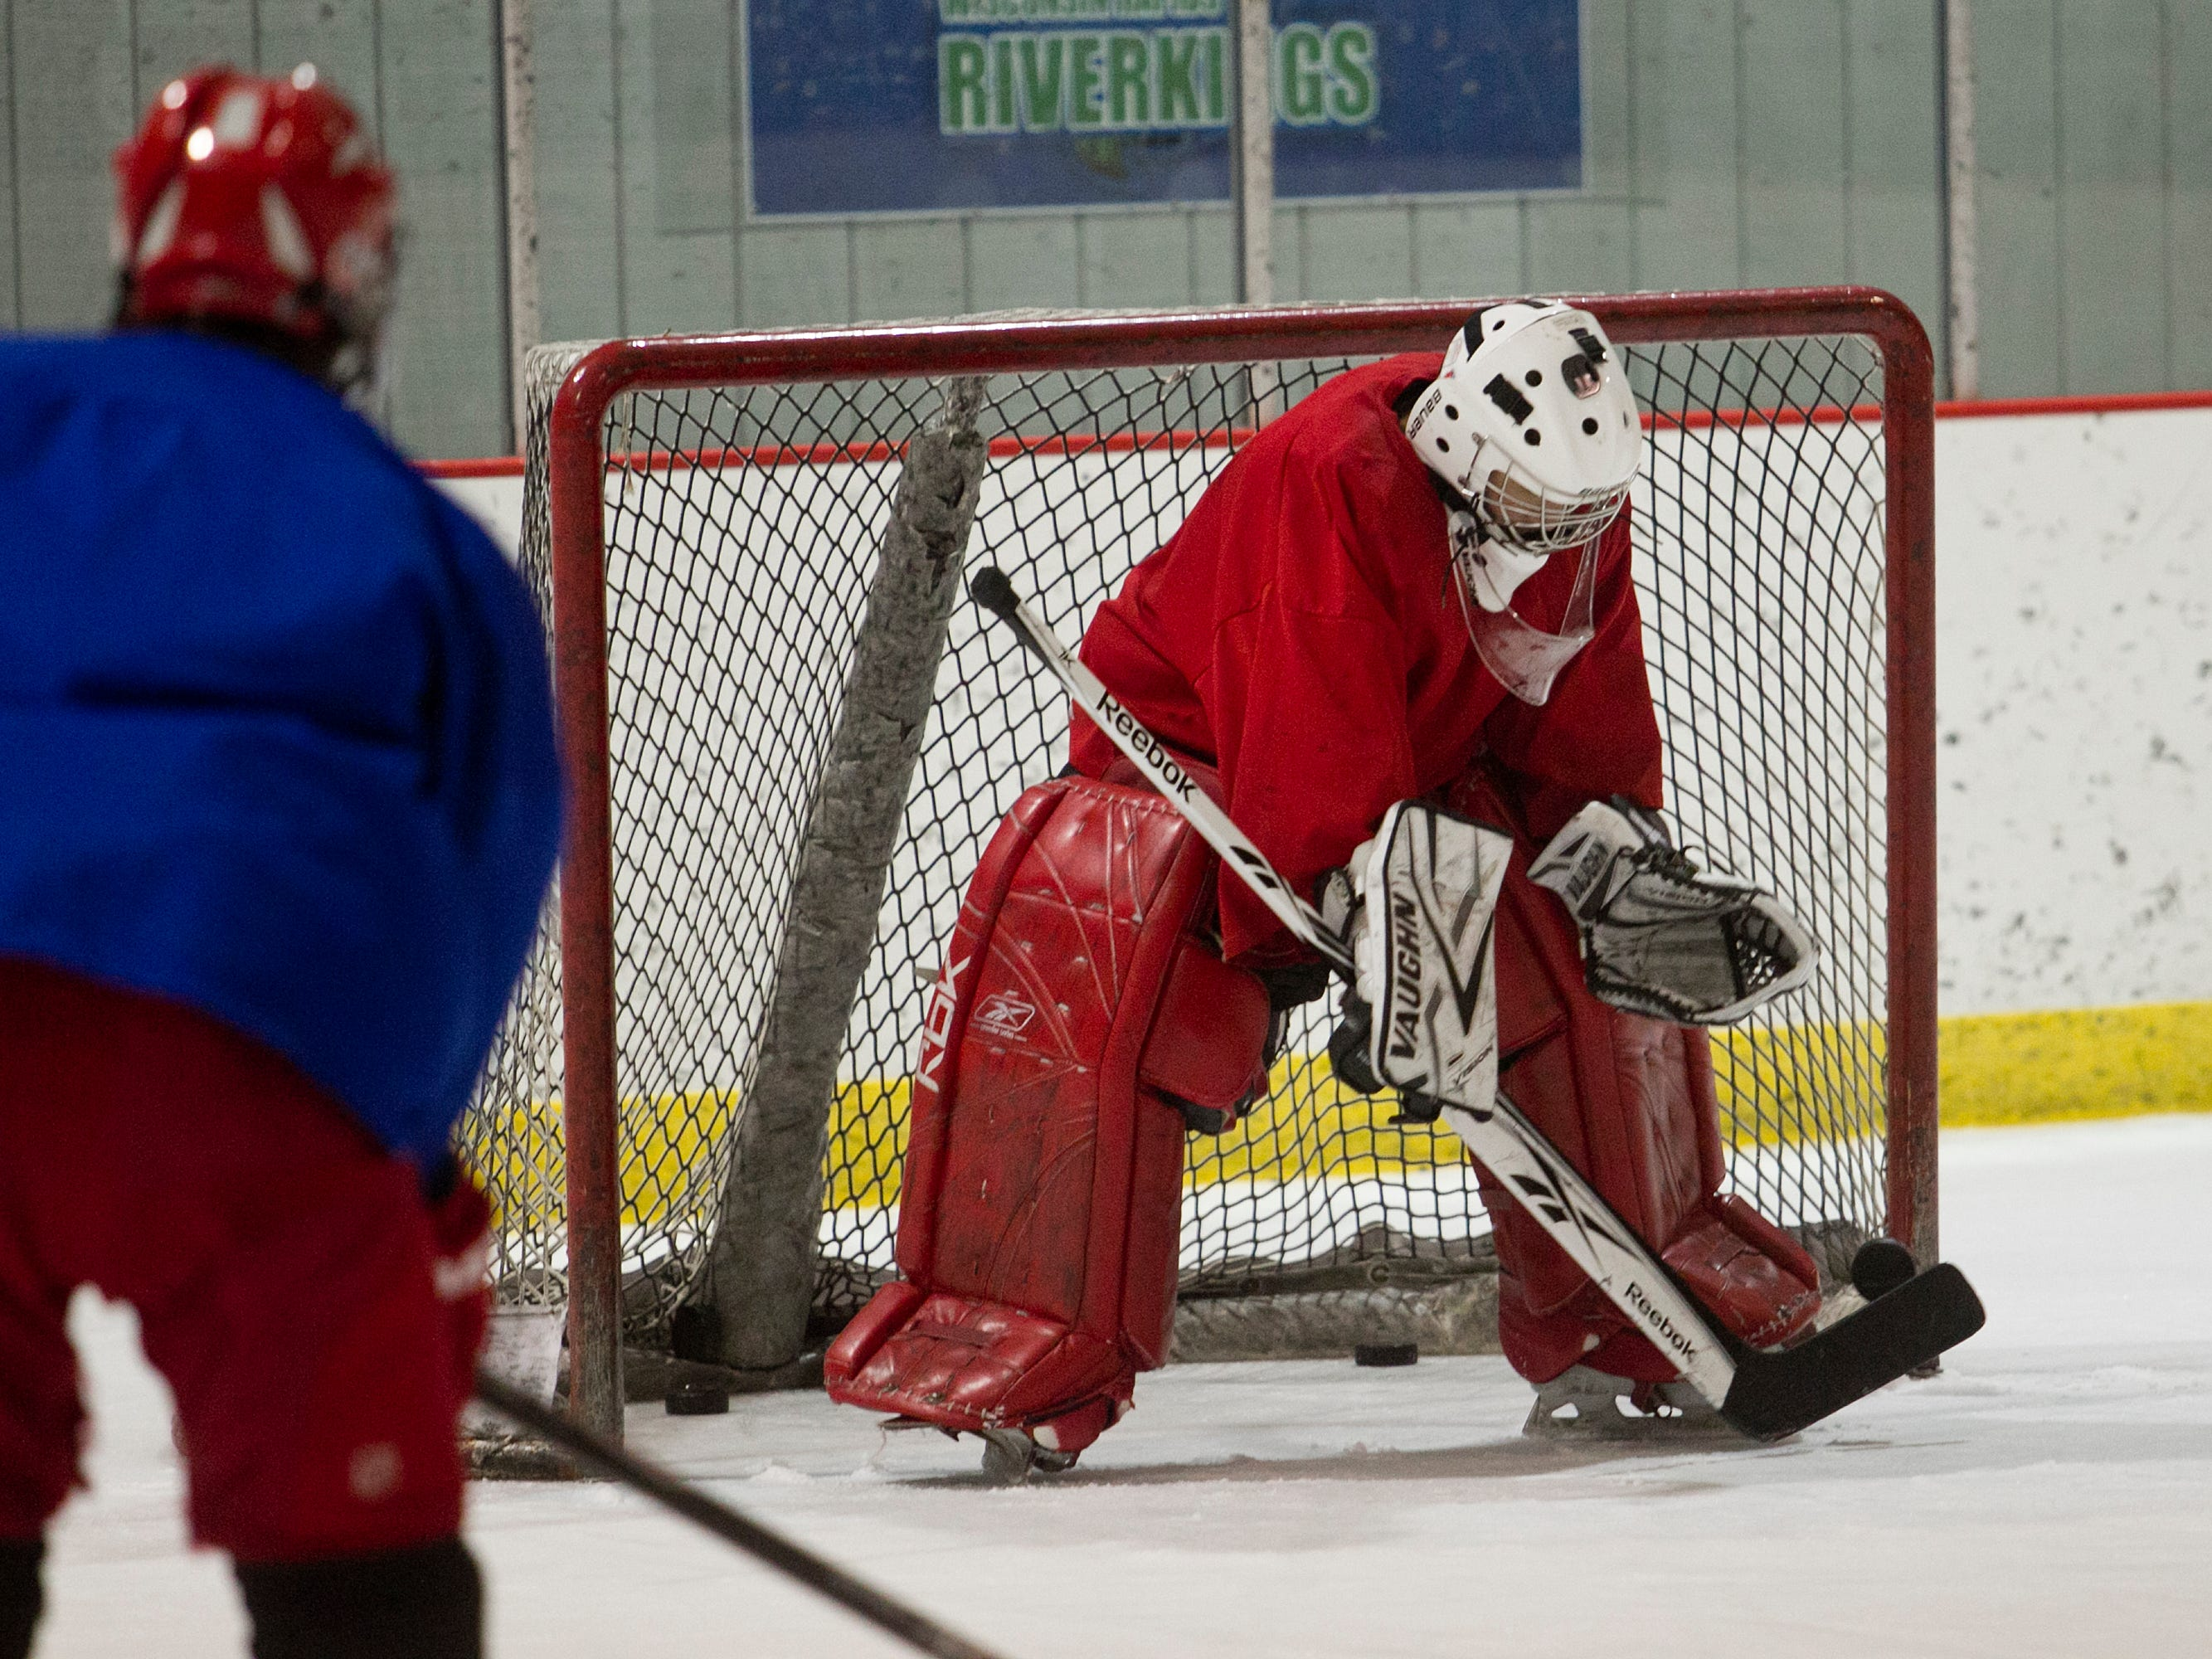 Daily Tribune Media sports reporter Mark Massoglia stands in as goalie during Wisconsin Rapids hockey practice Friday at the South Wood County Recreation Center in Wisconsin Rapids.